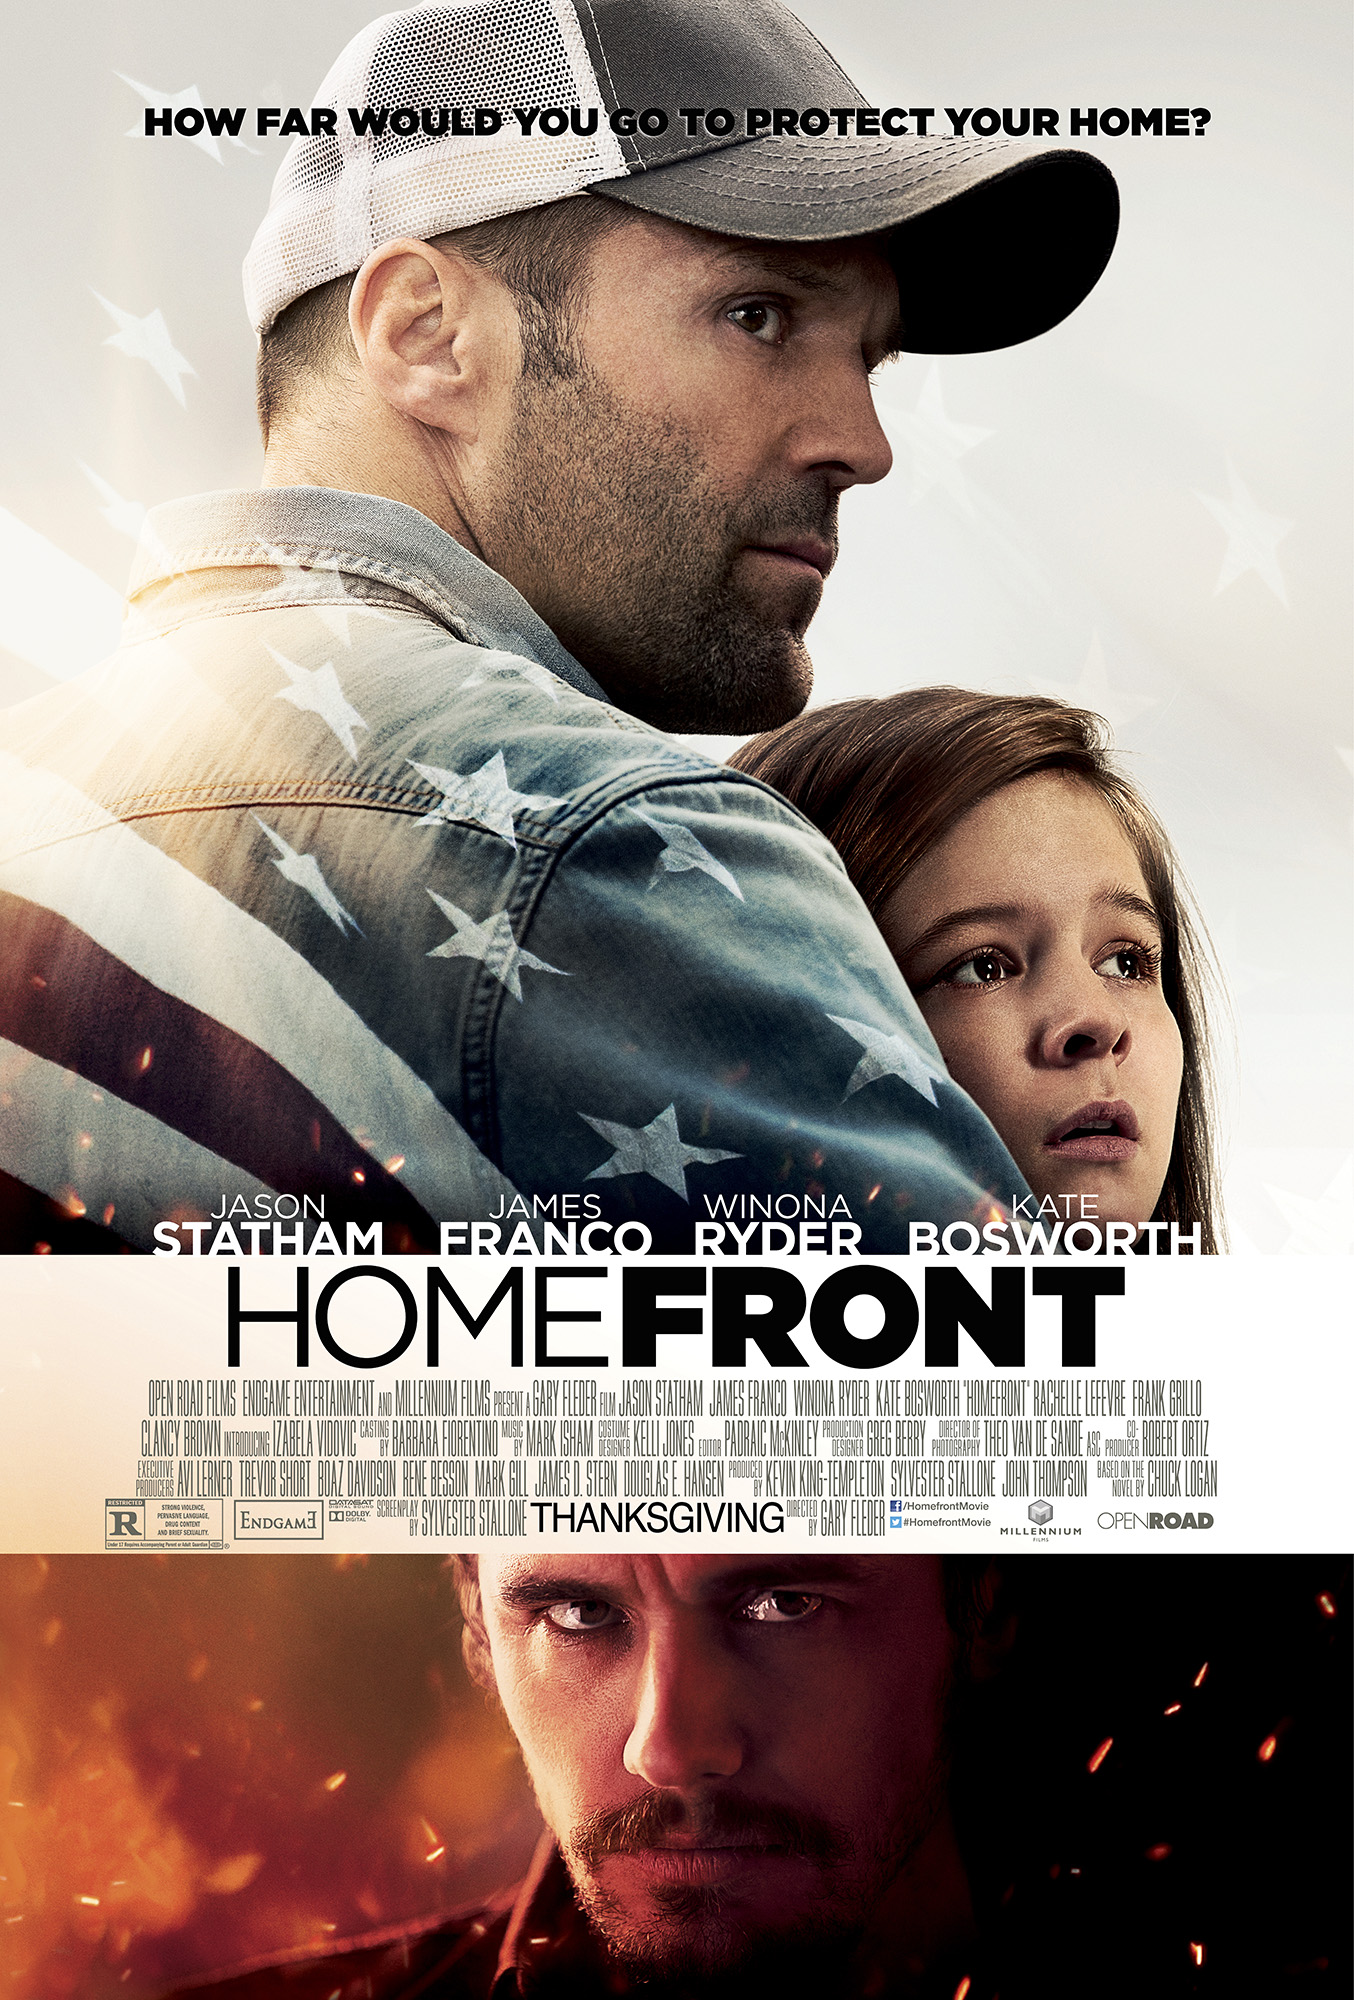 Jason Statham Goes On the Warpath in New Homefront Red Band Trailer Jason Statham Goes On the Warpath in New Homefront Red Band Trailer